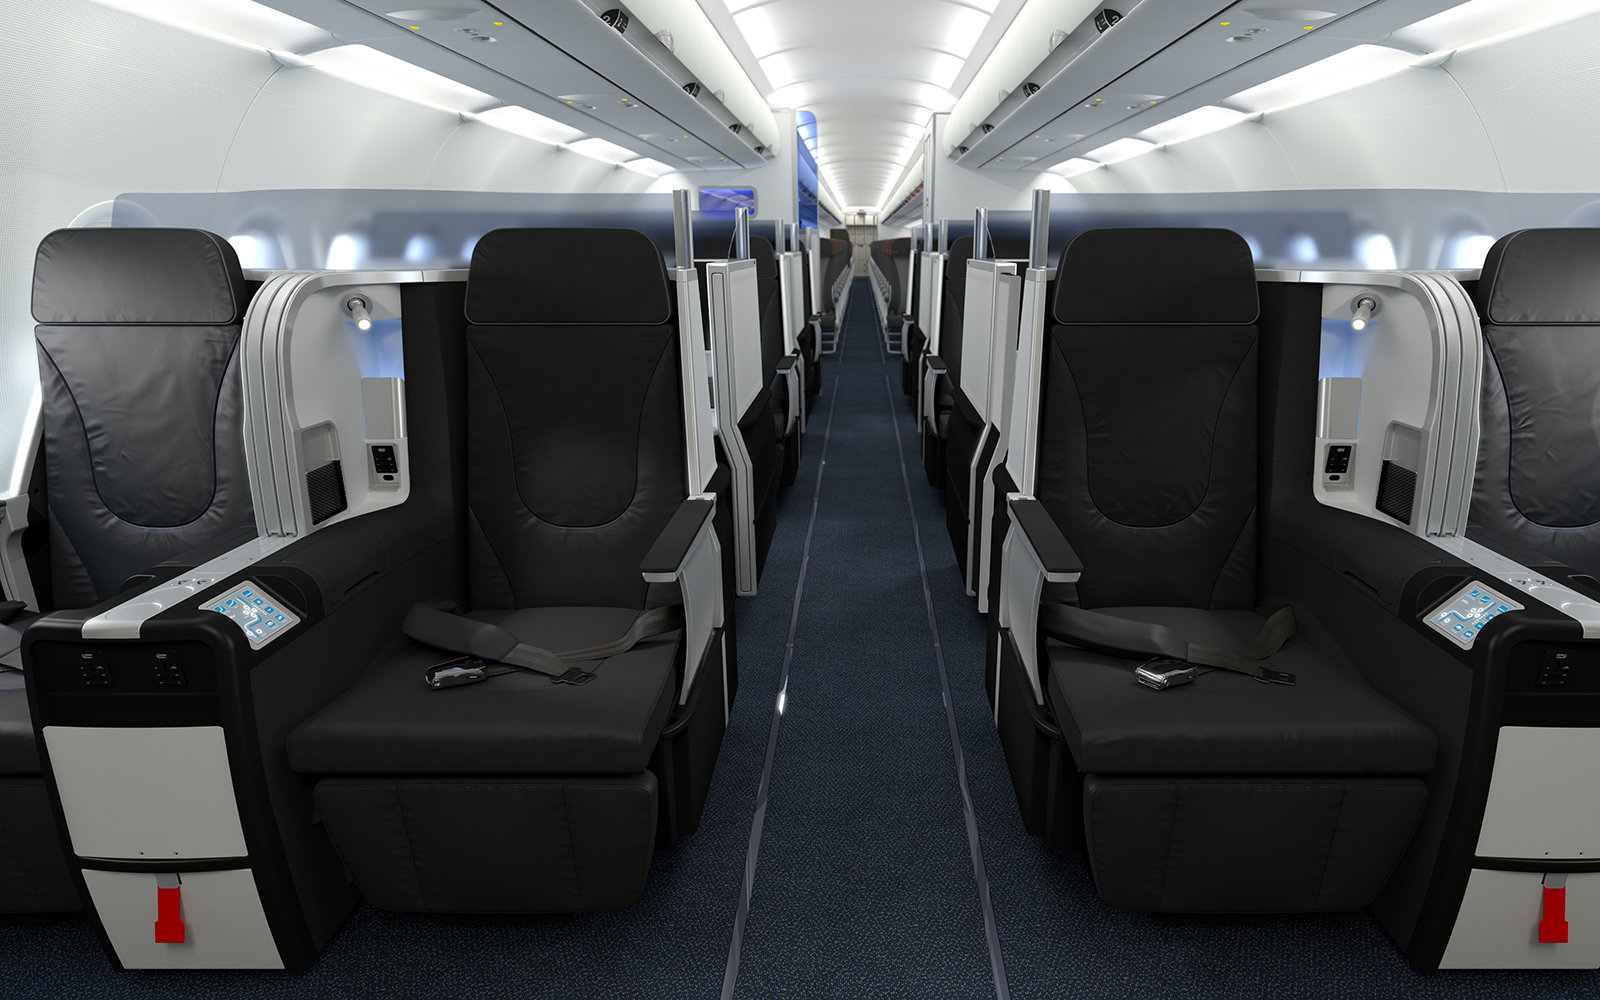 Mint seats in JetBlue's first class